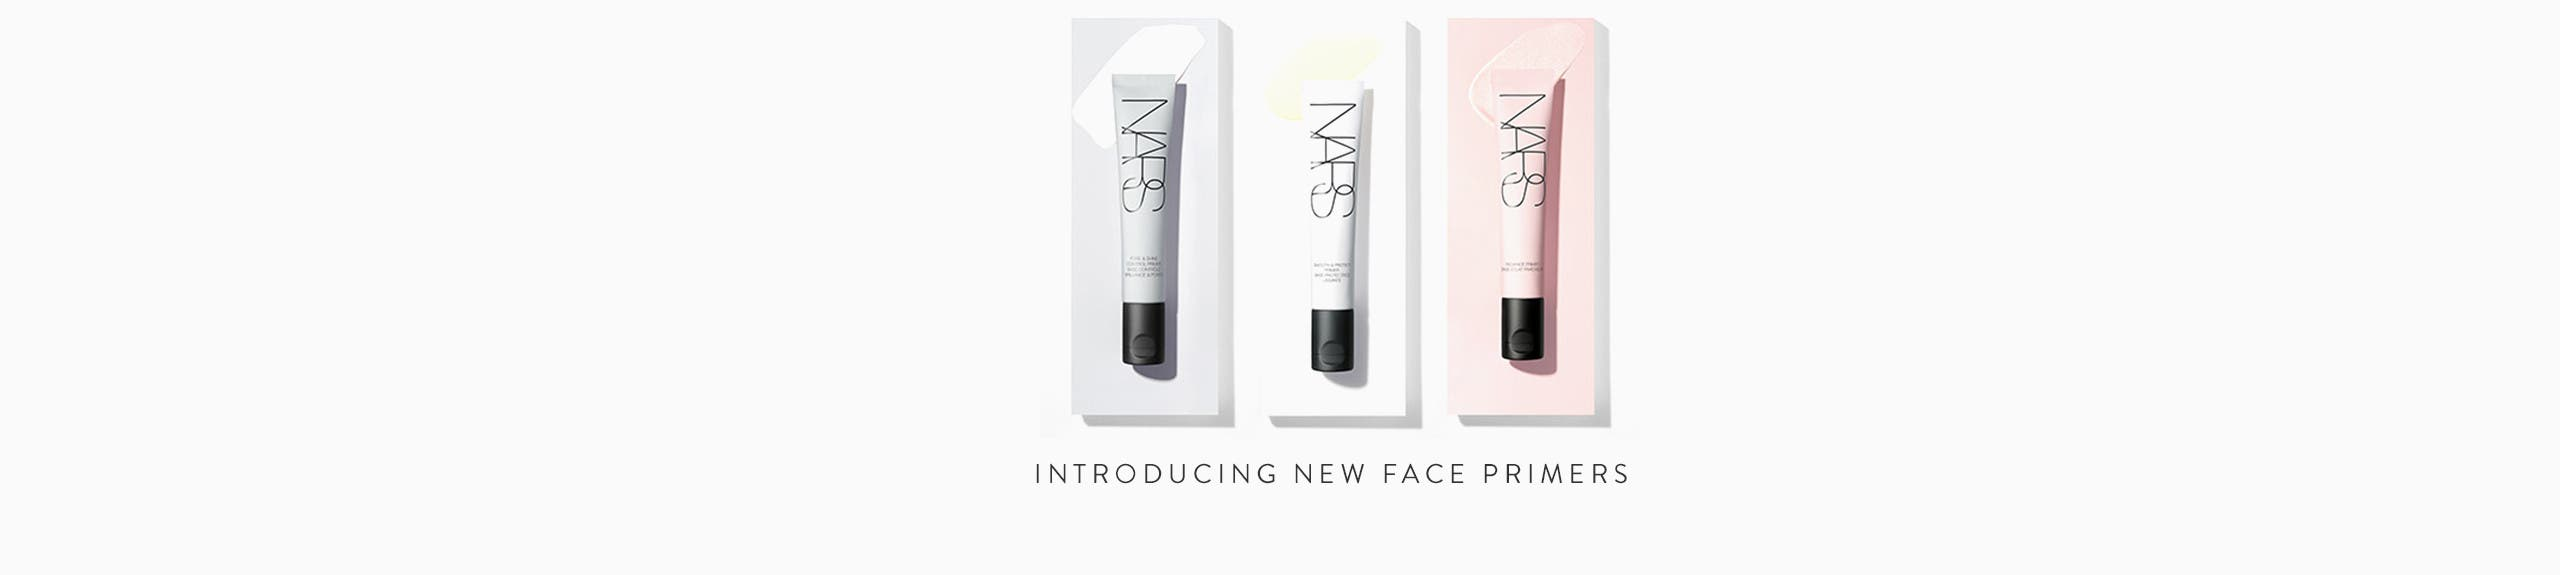 Introducing New Face Primers.